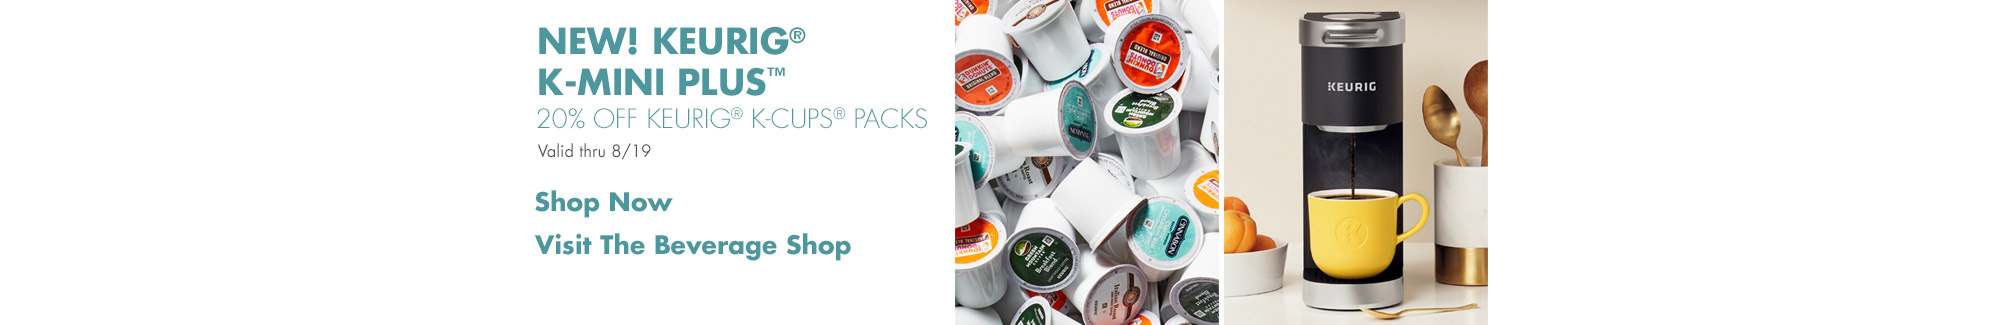 20% off Keurig Value Packs